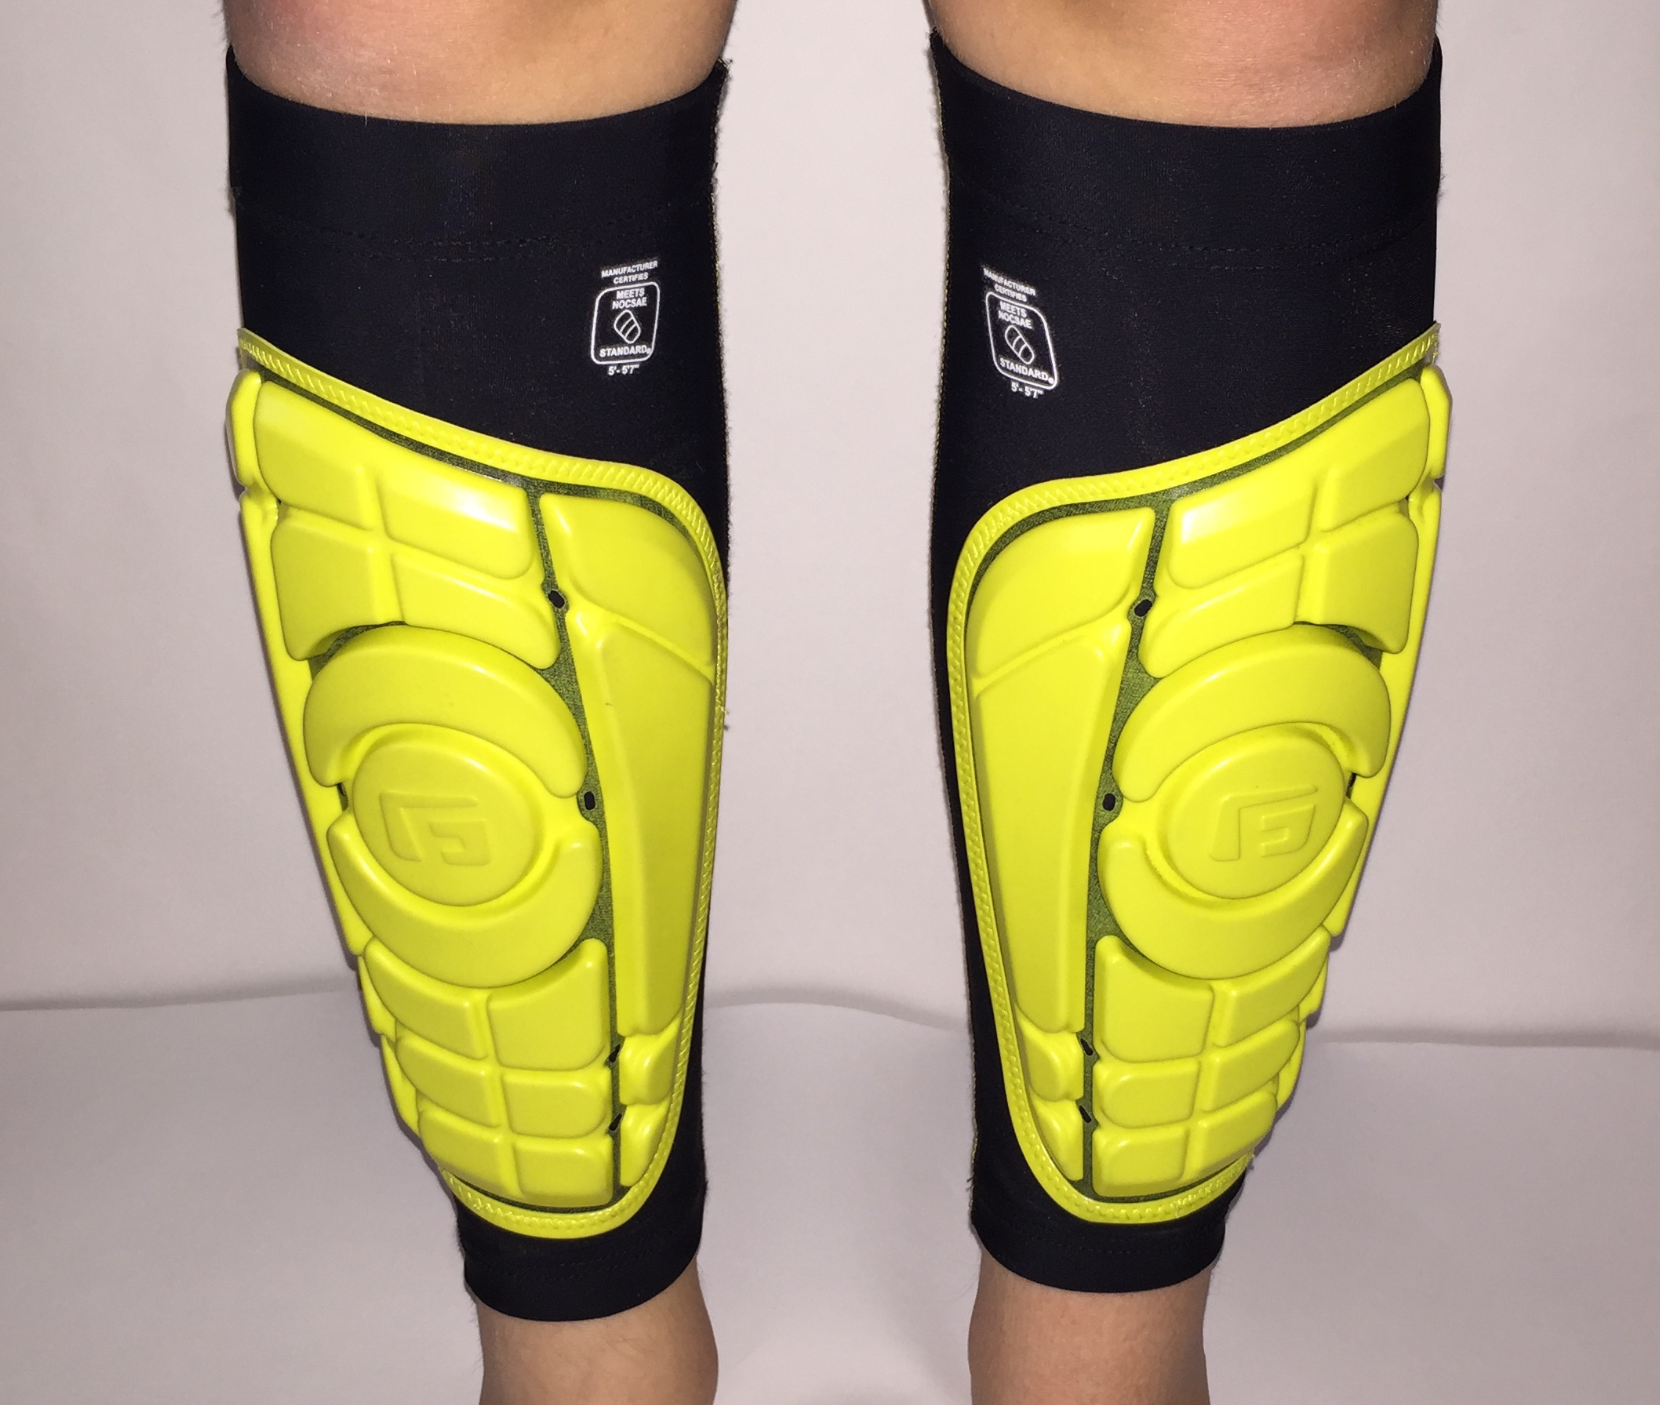 G-Form Pro-S Shin Guards Review | Soccer Equipment Reviews ...